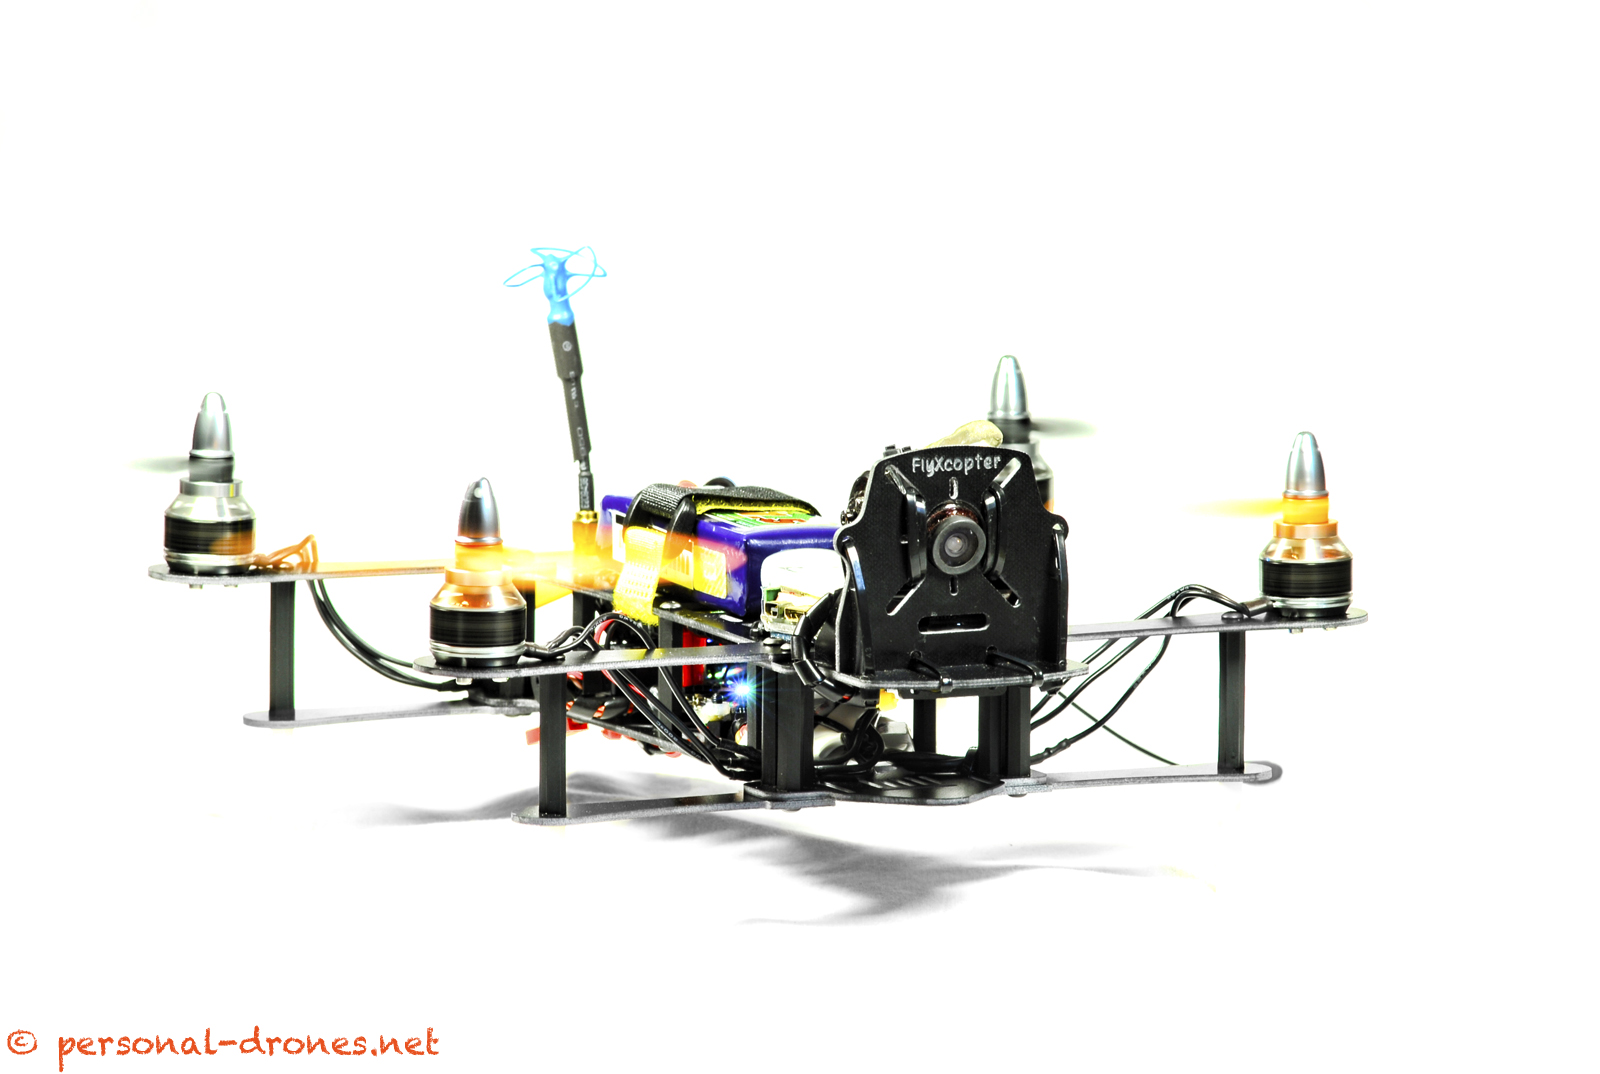 FlyXcopter FlyX-Mini Quadcopter